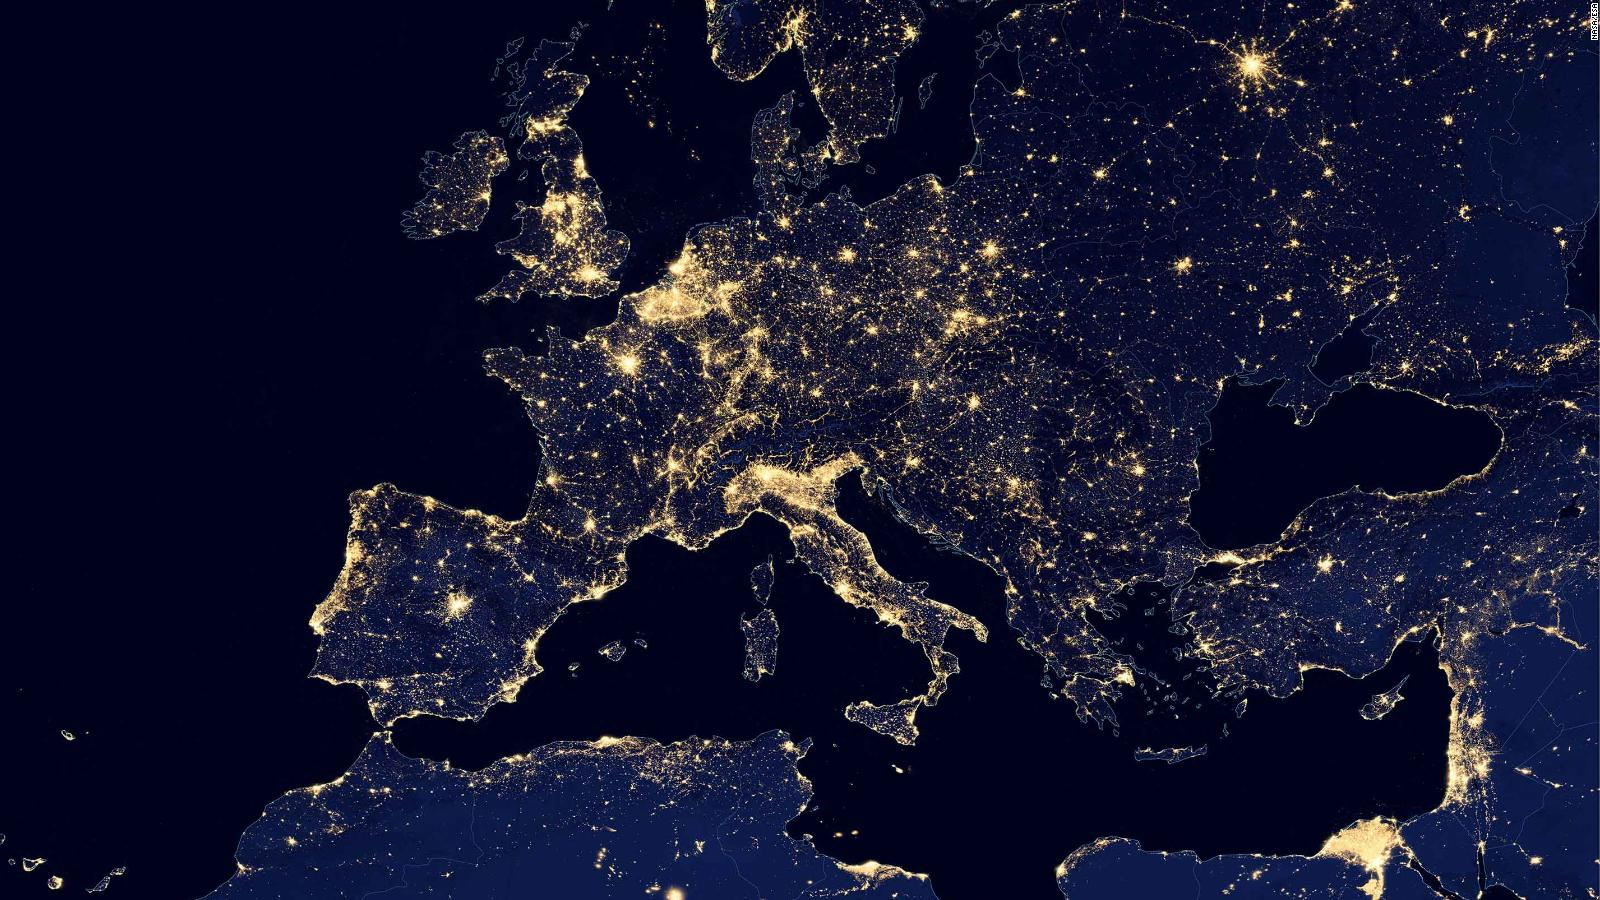 Light Pollution Suomi NPP Data Used To Create World Atlas Of - Us at night map